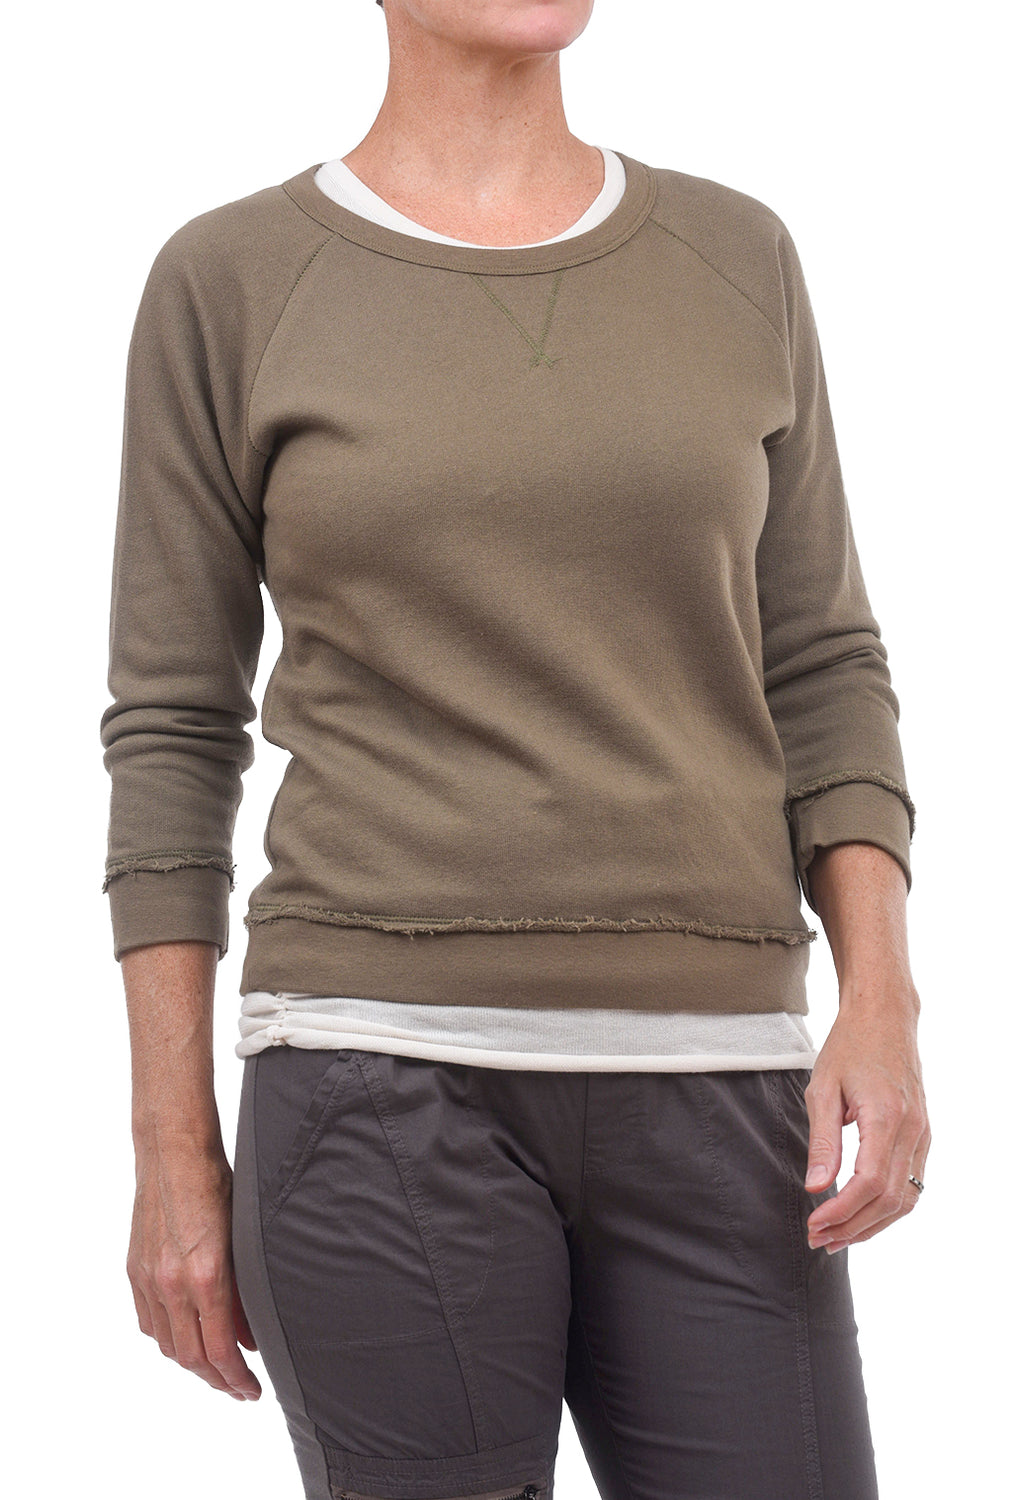 Lilla P FT 3/4-Sleeve Sweatshirt, Military